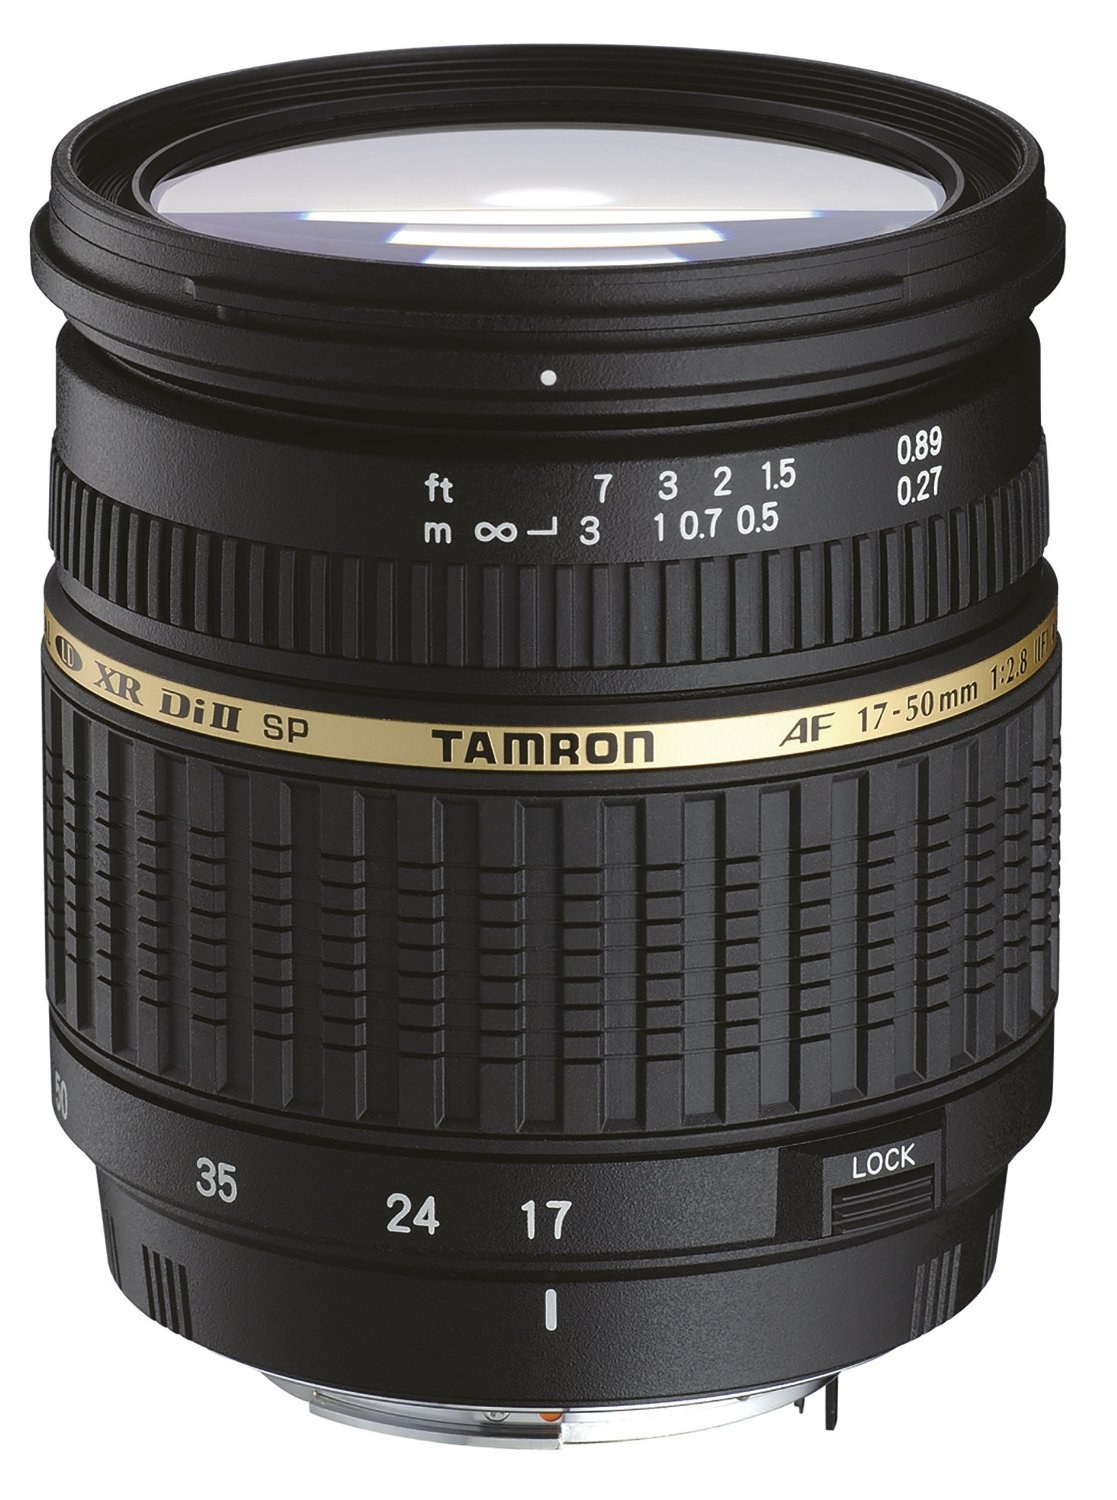 Amazon.com : Tamron 17-50mm SP AF F/2.8 XR DiII LD Aspherical (IF) Lens for PENTAX Digital - International Version (No Warranty) : Digital Slr Camera Lenses